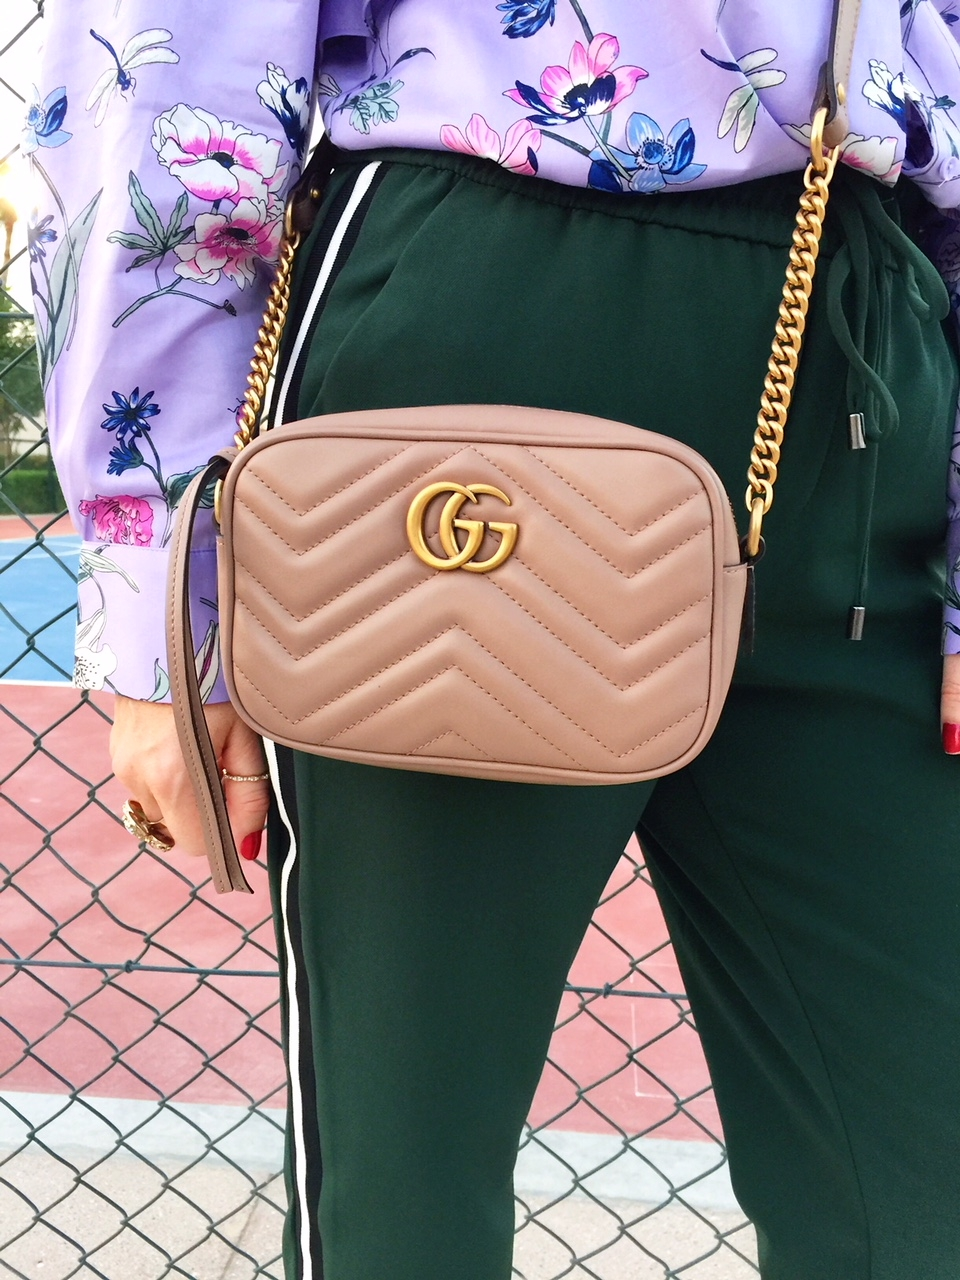 fa0076fa2bc2 gucci-marmont-selfridges-crossbody-bag-minibag-designer-purchase-